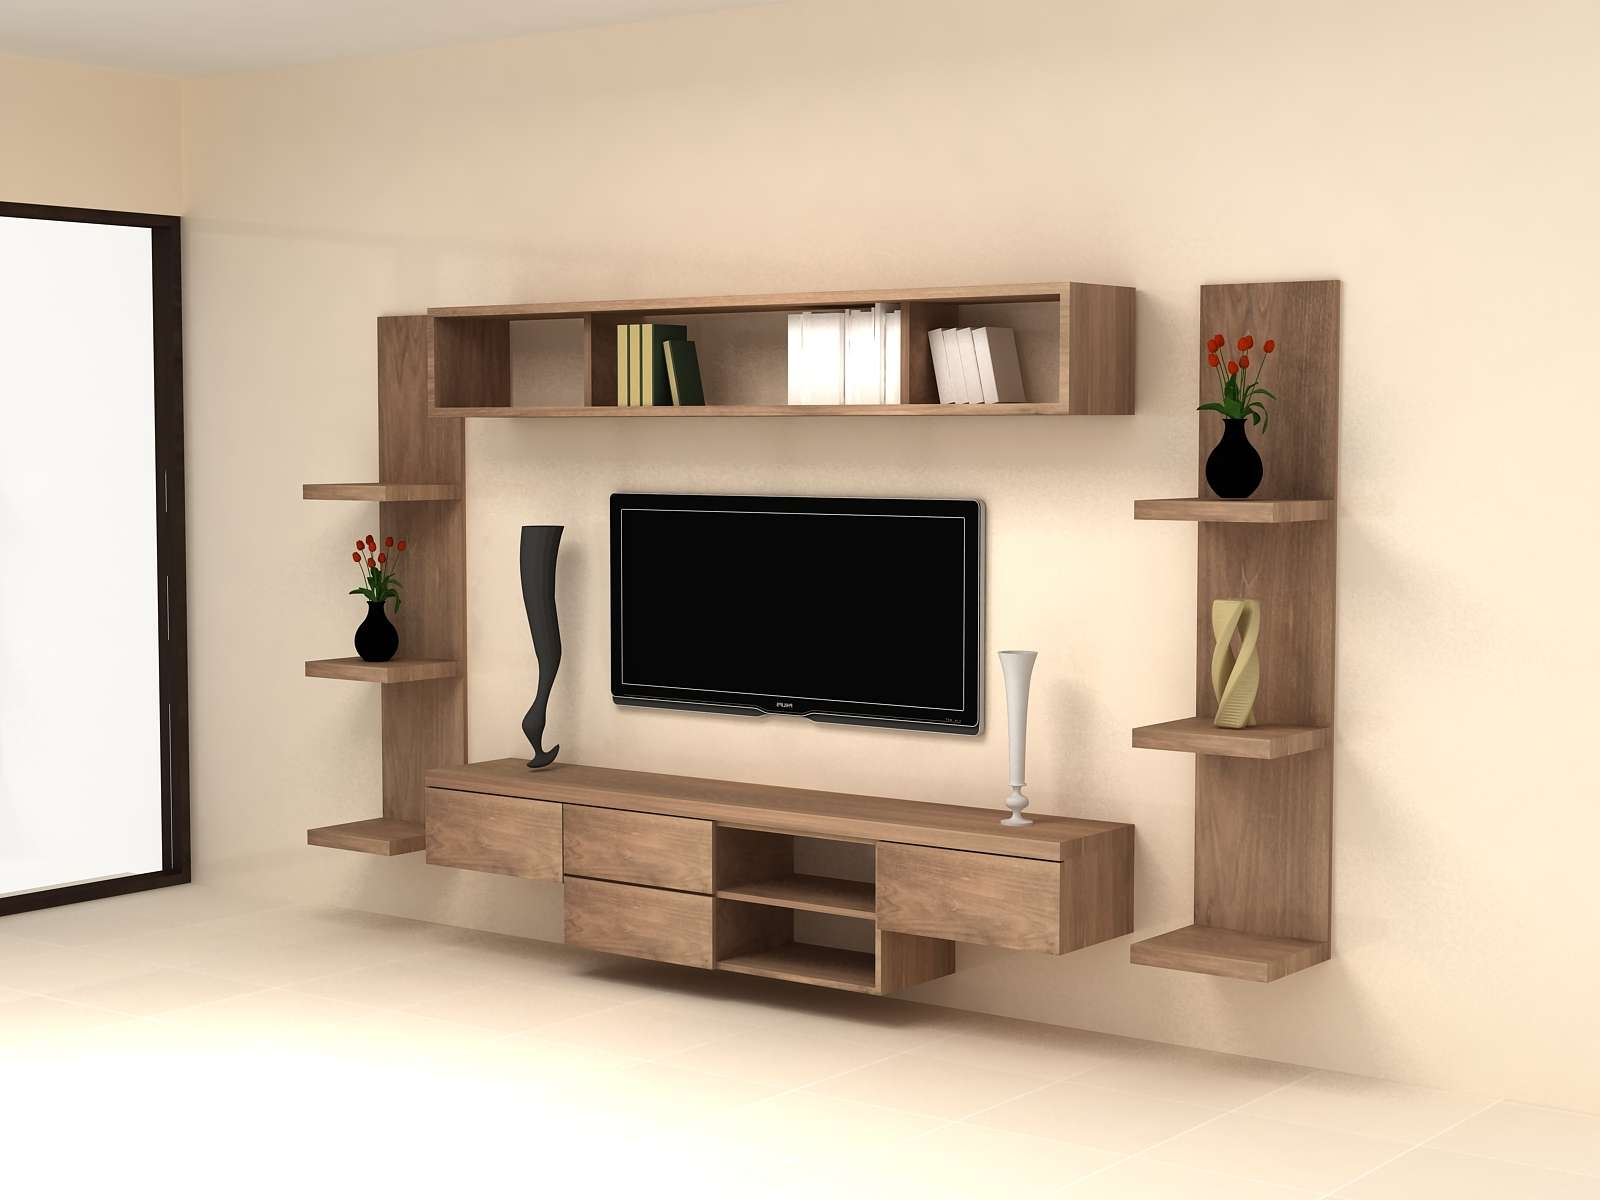 Exceptionnel Modern Tv Cabinet Designs For Living Room Tags : Wall  Cupboards Within Baby Proof Contemporary